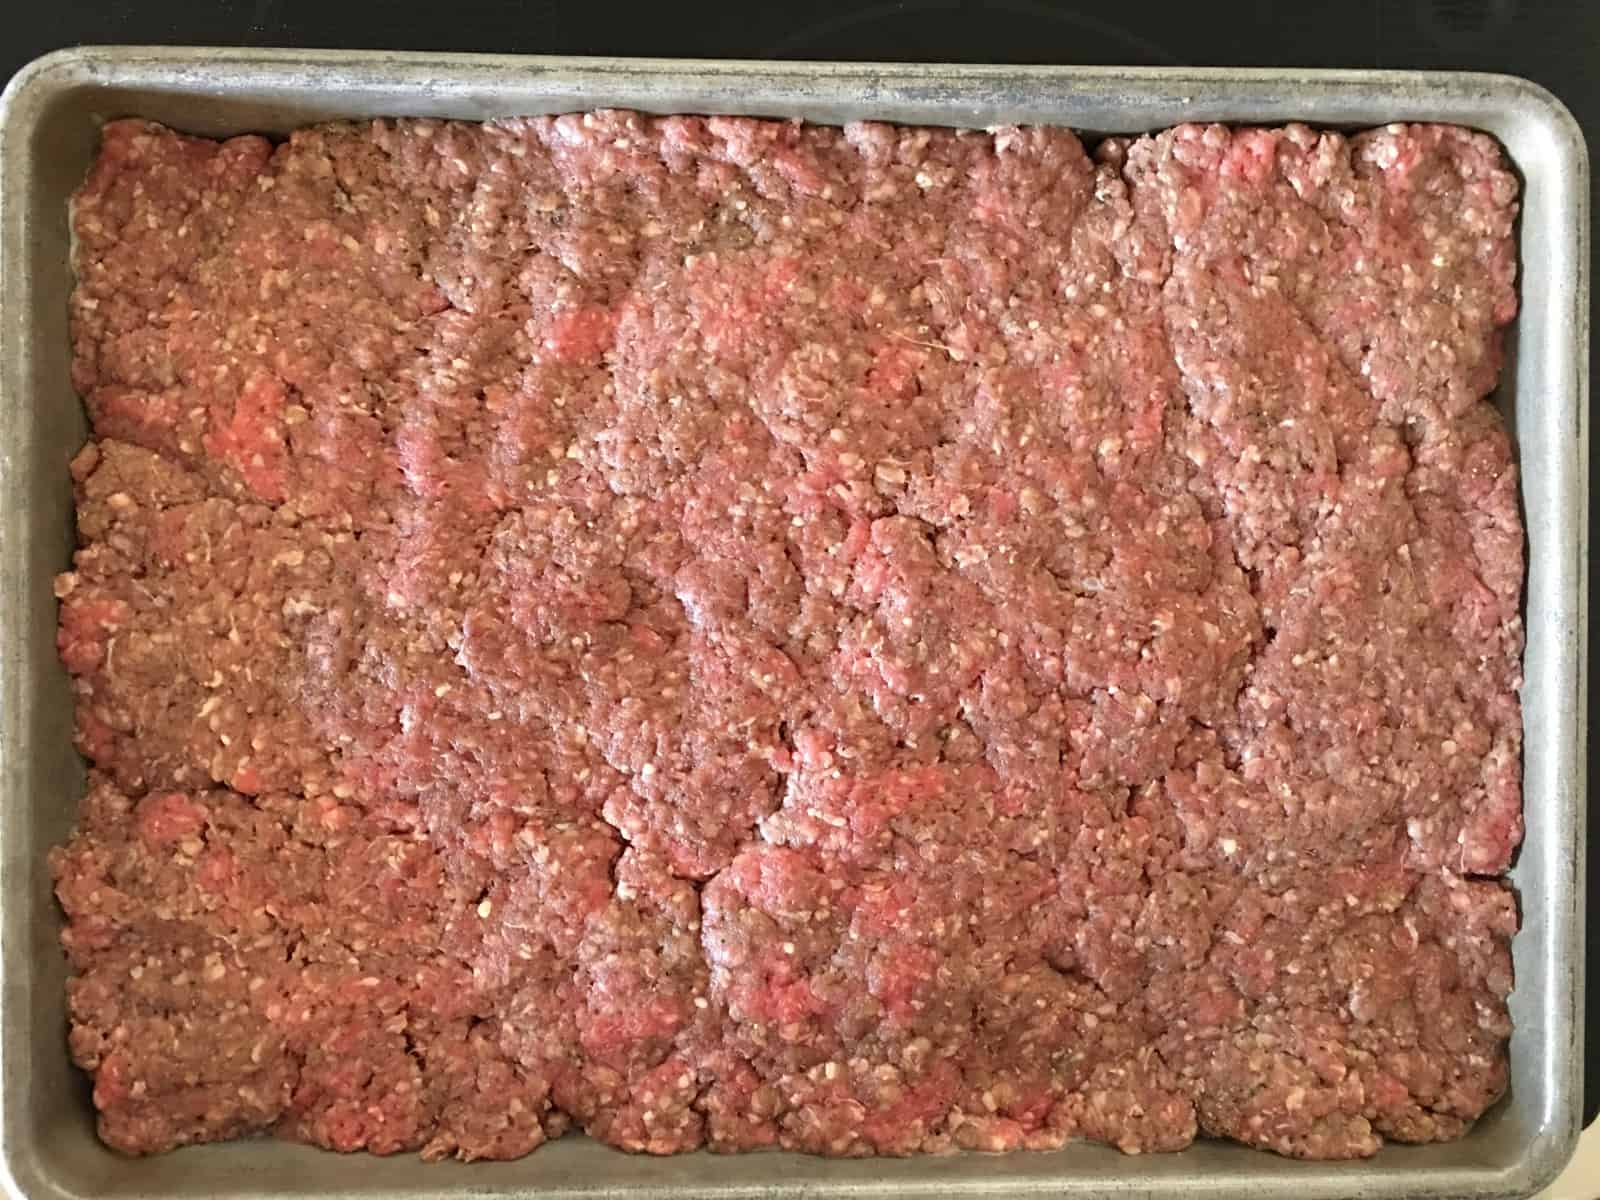 ground beef in a baking pan.